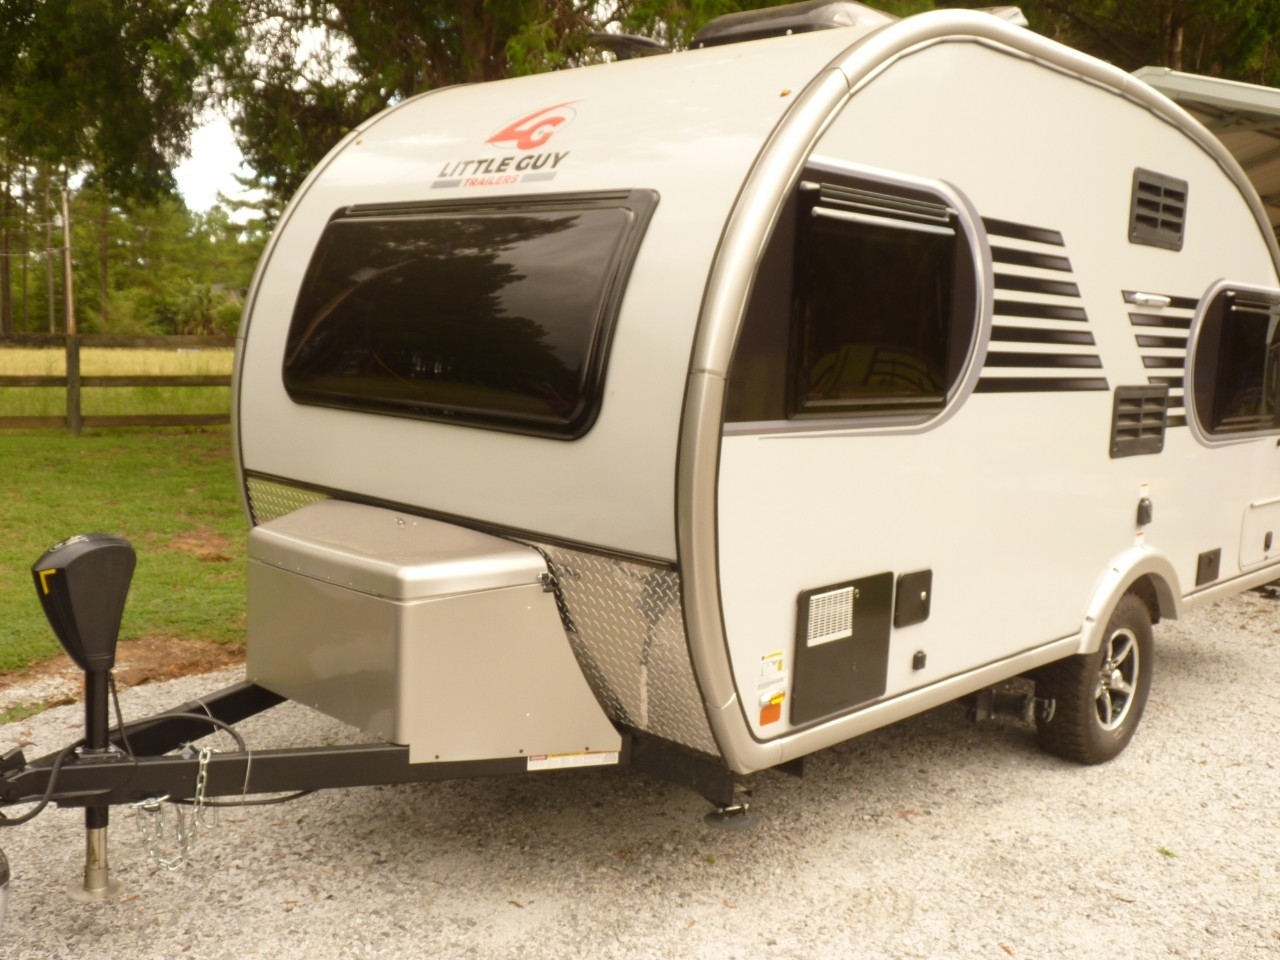 Used Little Guy For Sale - Little Guy Travel Trailers - RV